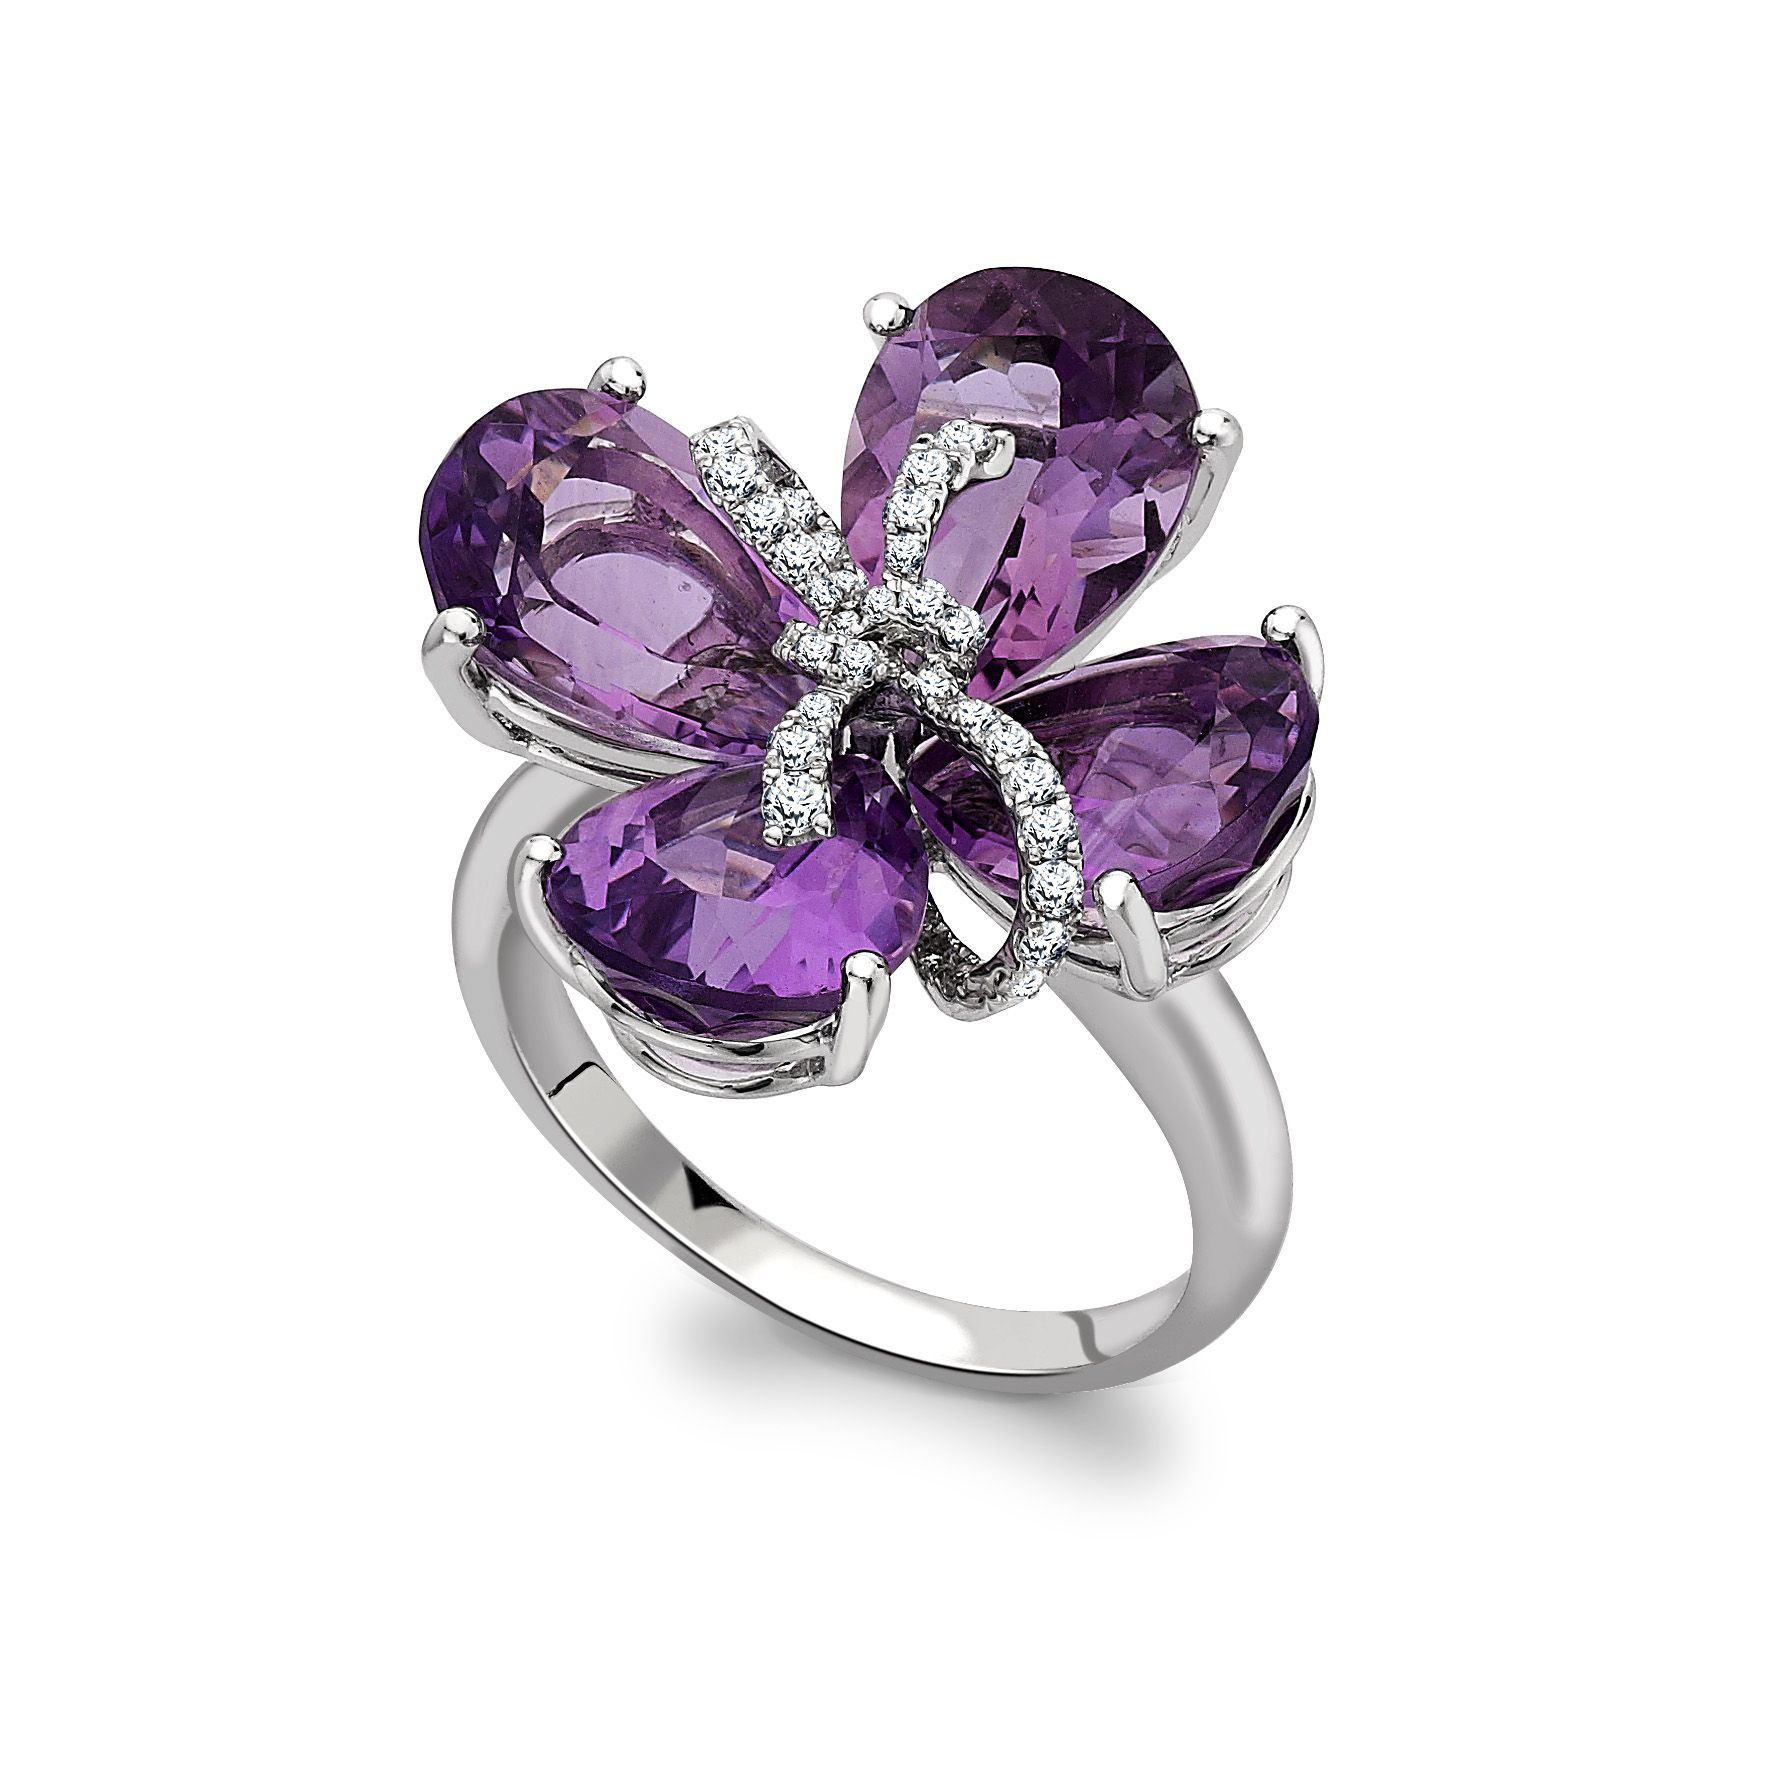 Black Flower Bow With Diamond: Glowing Amethyst Petals Intertwined